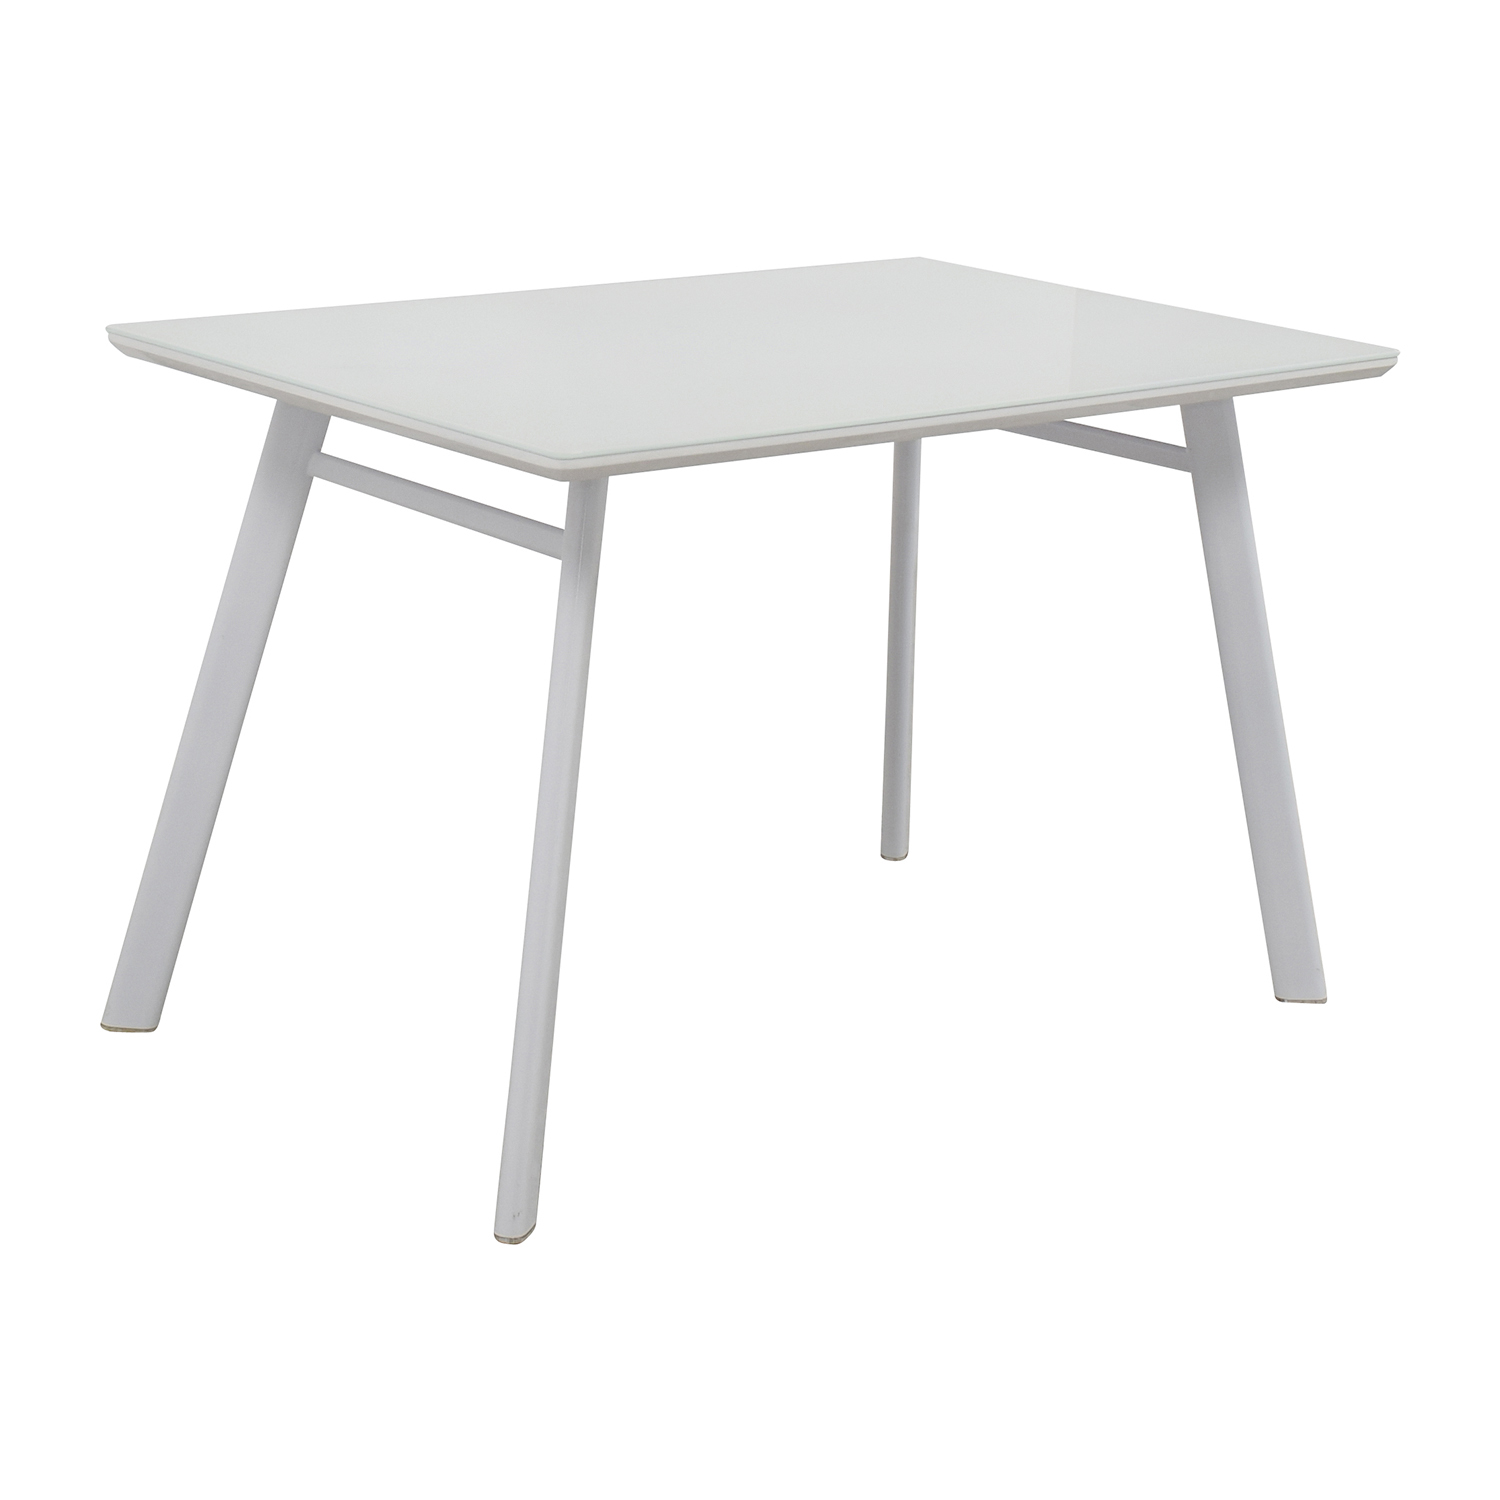 J&M J&M Furniture Height Dining Table for sale